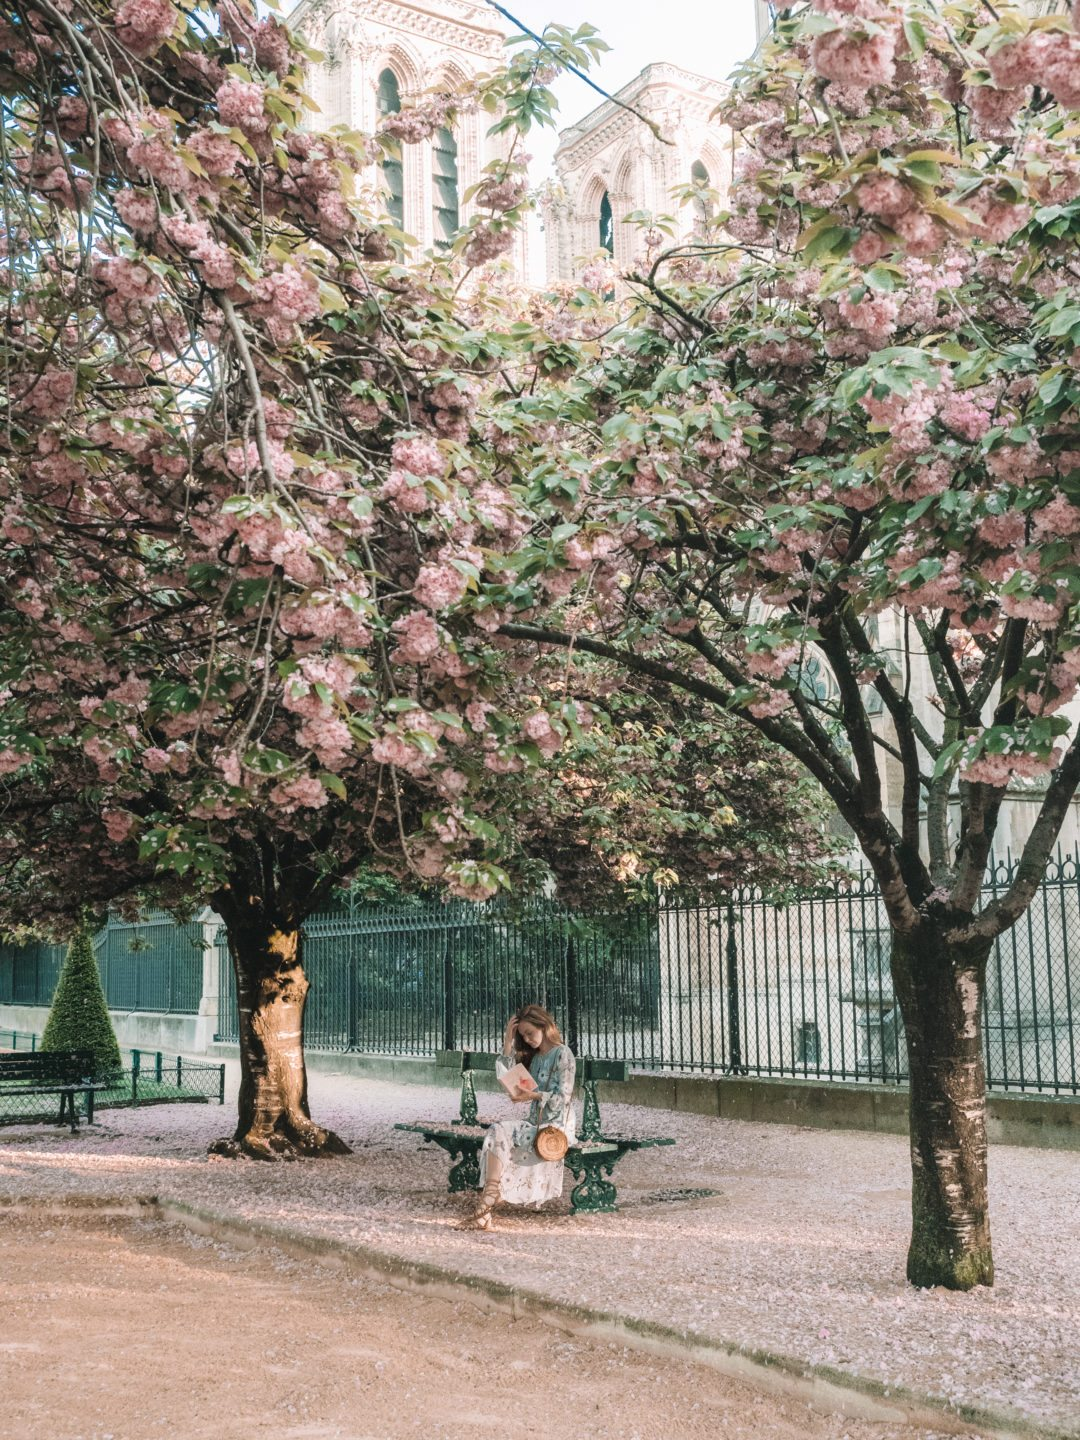 Where to find the best cherry blossoms in Paris | WORLD OF WANDERLUST